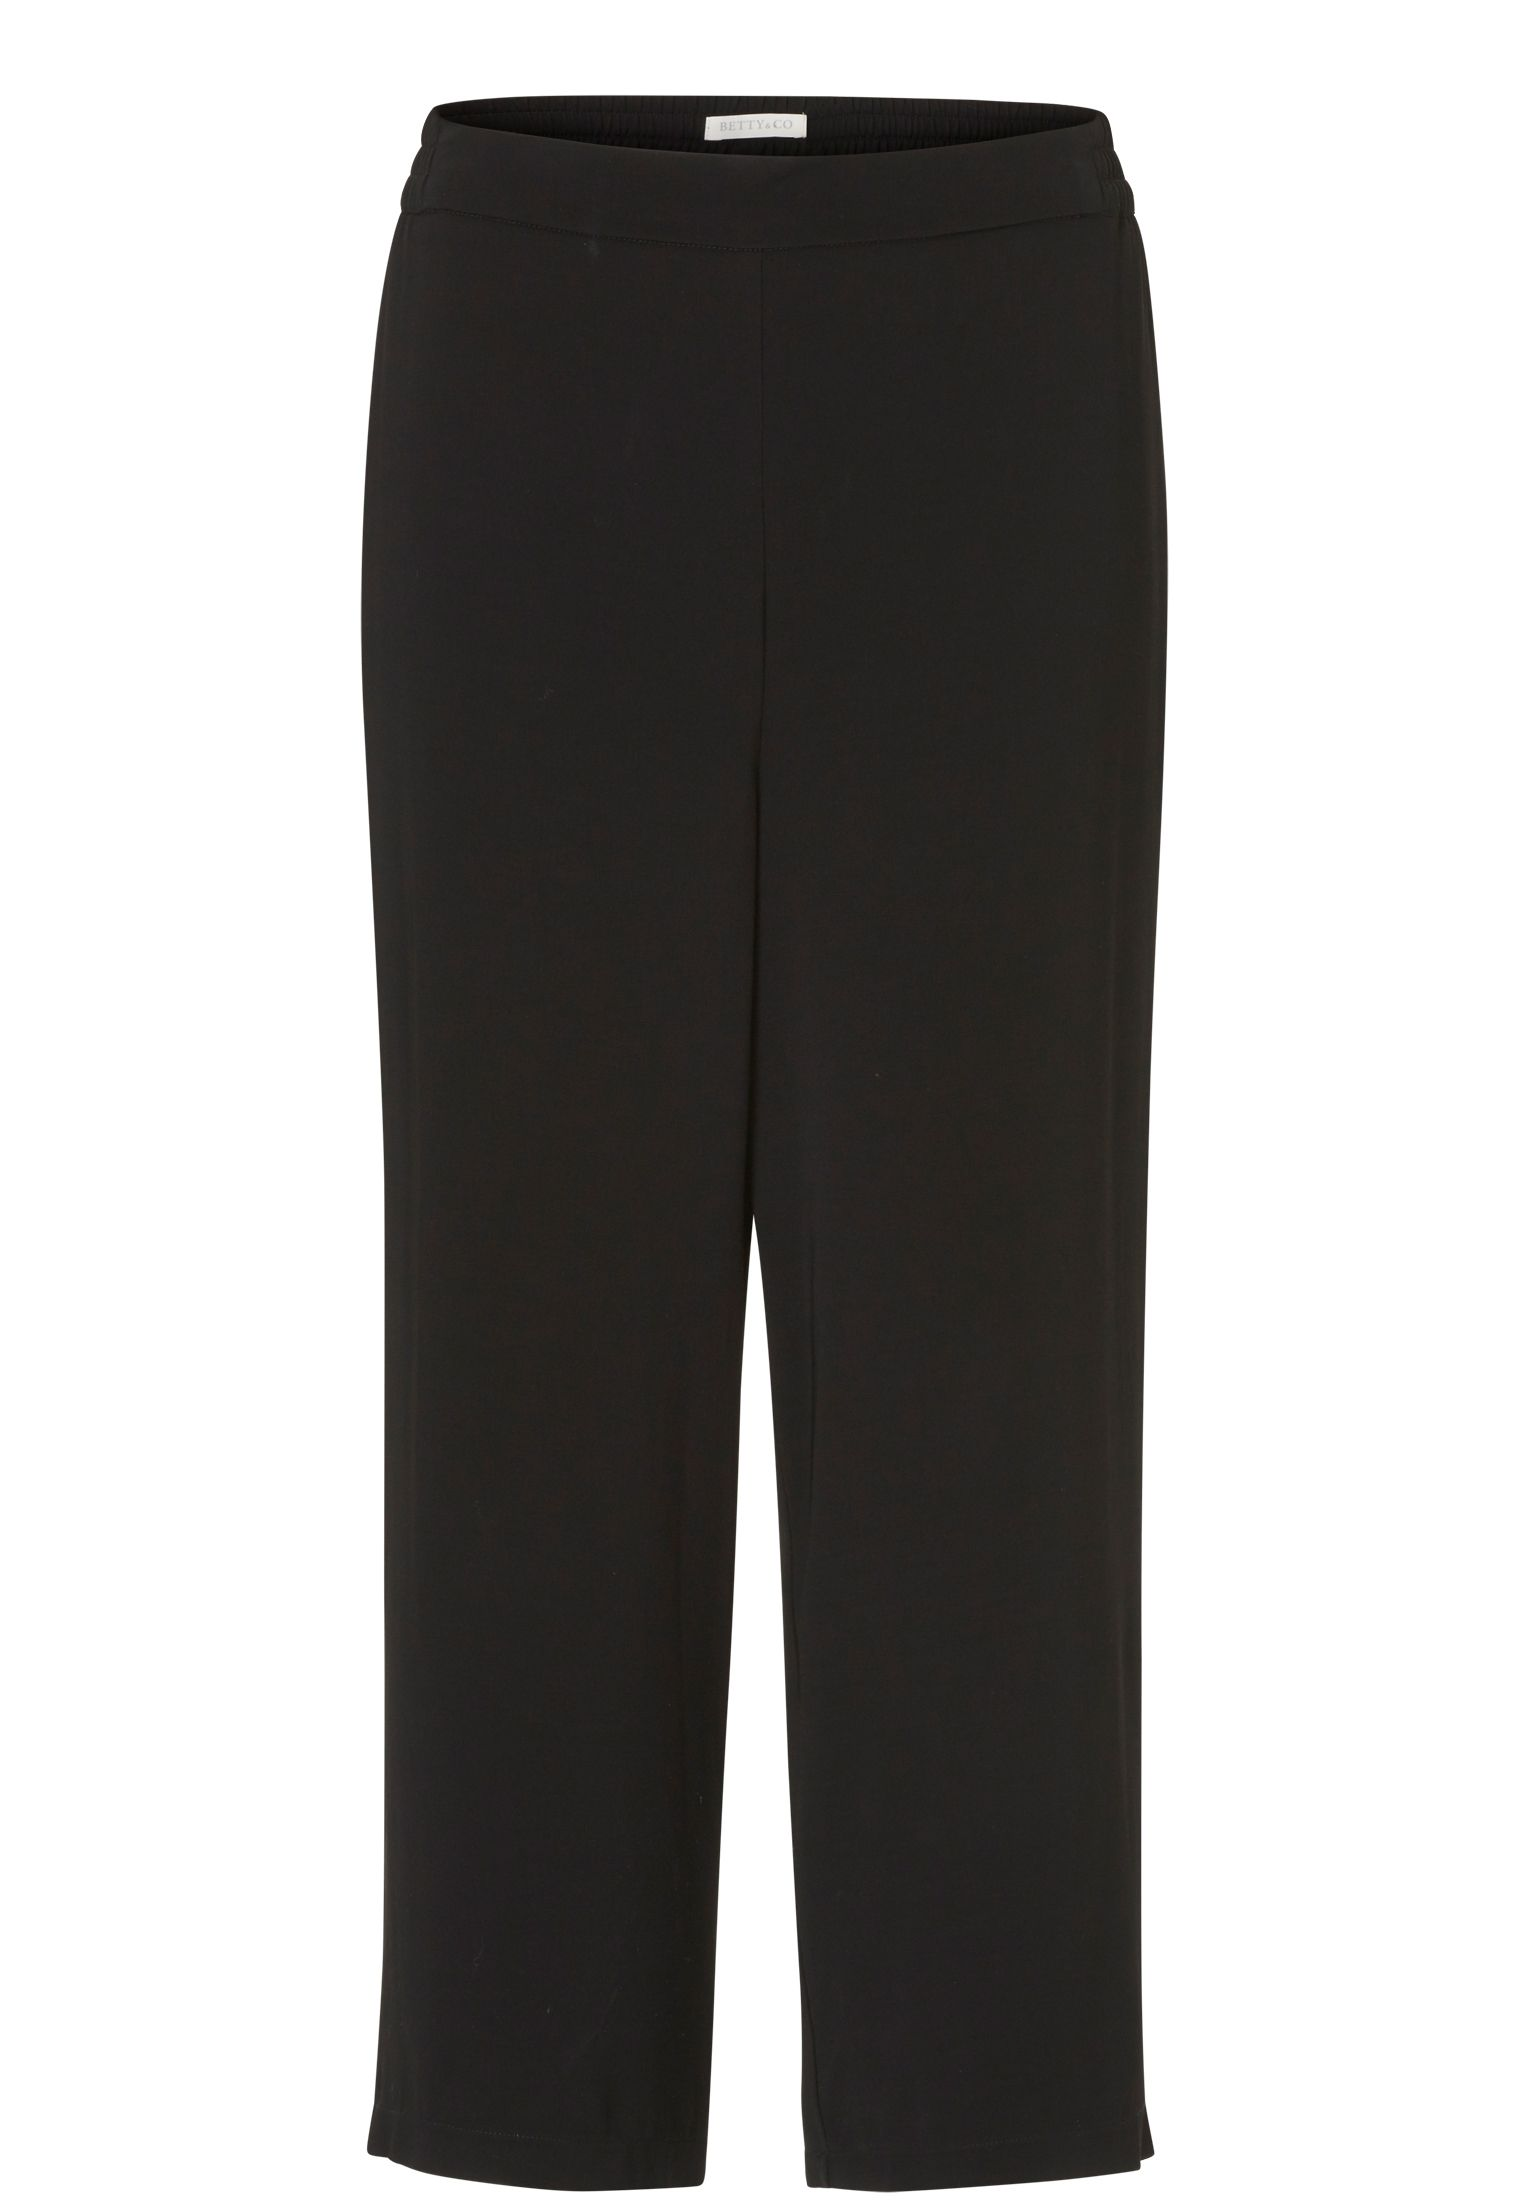 Betty & Co. Culottes, Black